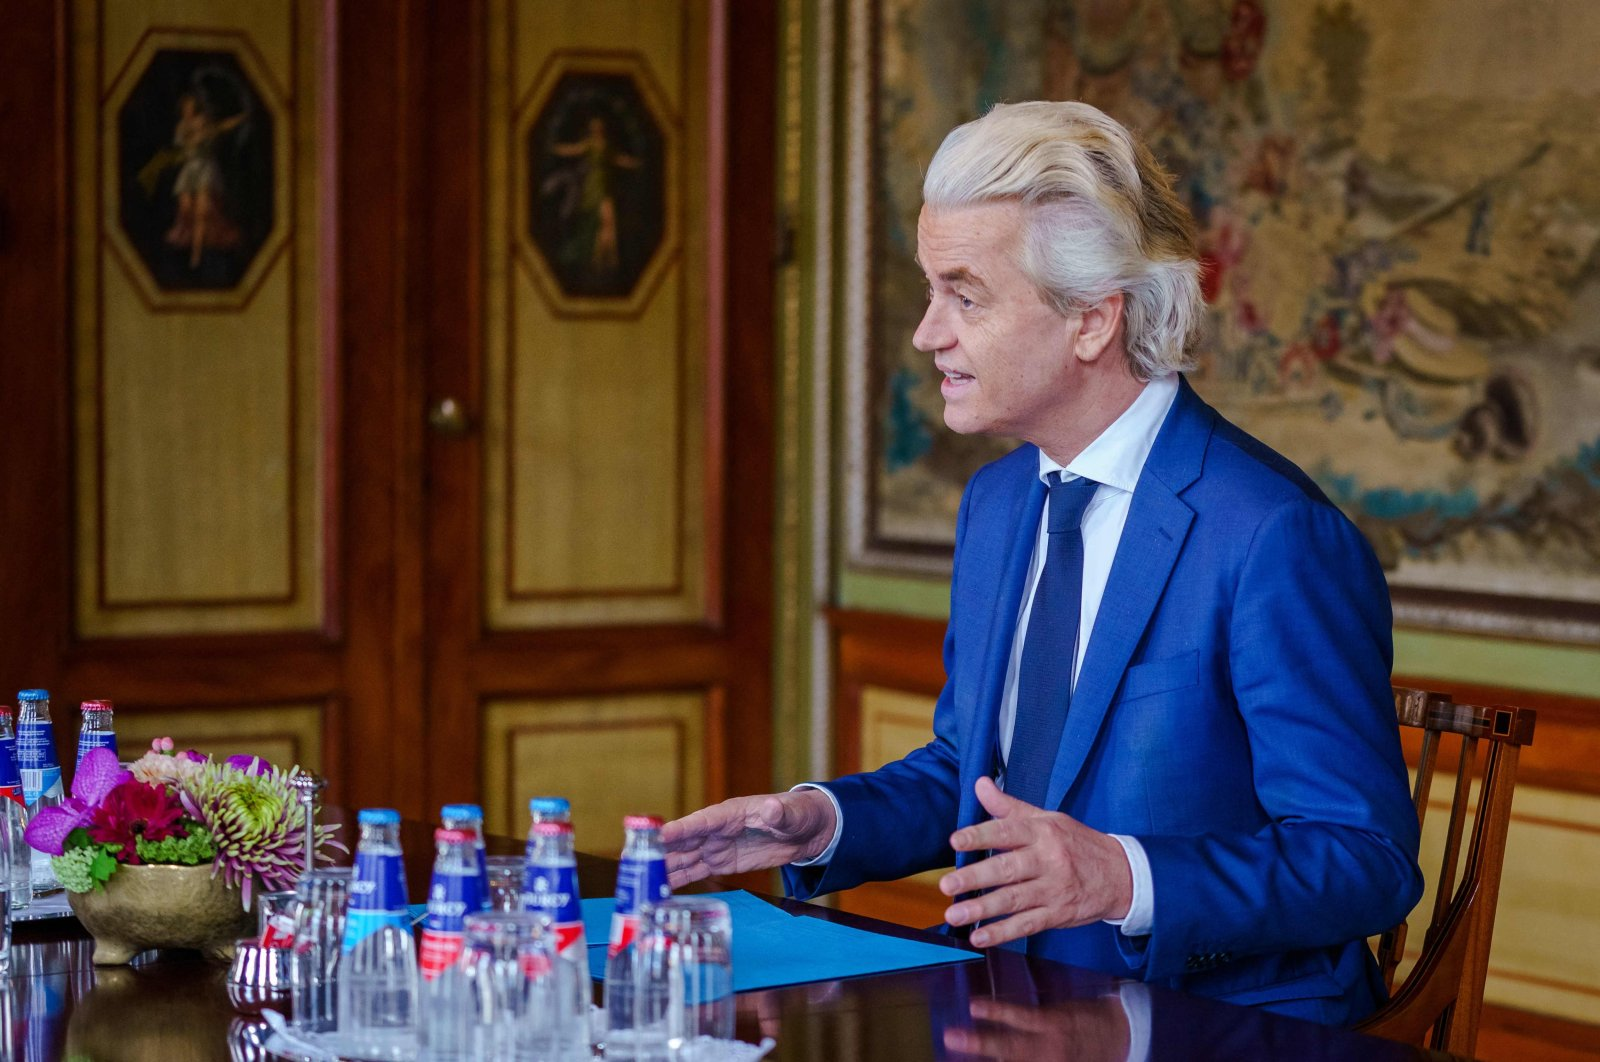 Dutch far-right Party for Freedom (PVV) leader Geert Wilders is received by Dutch informateur Herman Tjeenk Willink (not pictured) to discuss the constitution of a new government following the legislative elections, in the Lower House of the House of Representatives in The Hague, Netherlands, April 9, 2021. (AFP Photo)